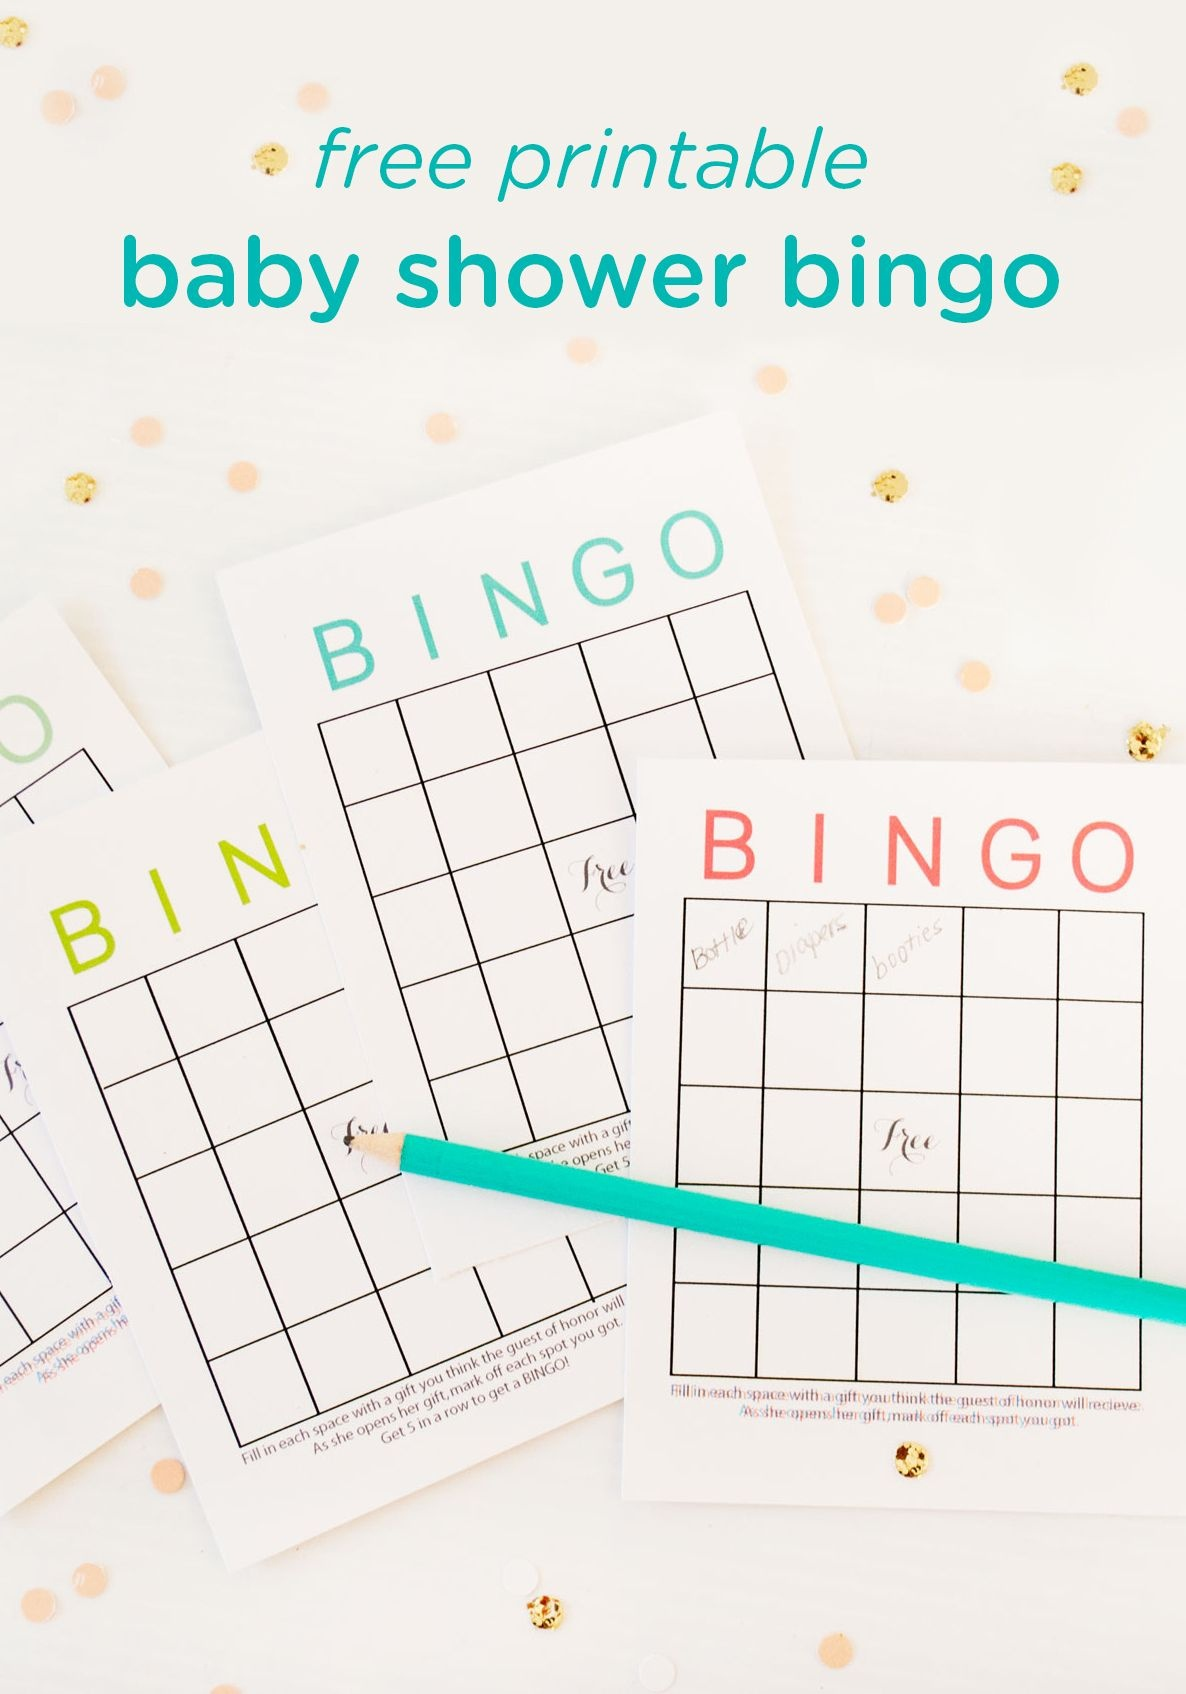 Free Printable Baby Shower Bingo Cards | Baby Shower Ideas | Baby - 50 Free Printable Baby Bingo Cards